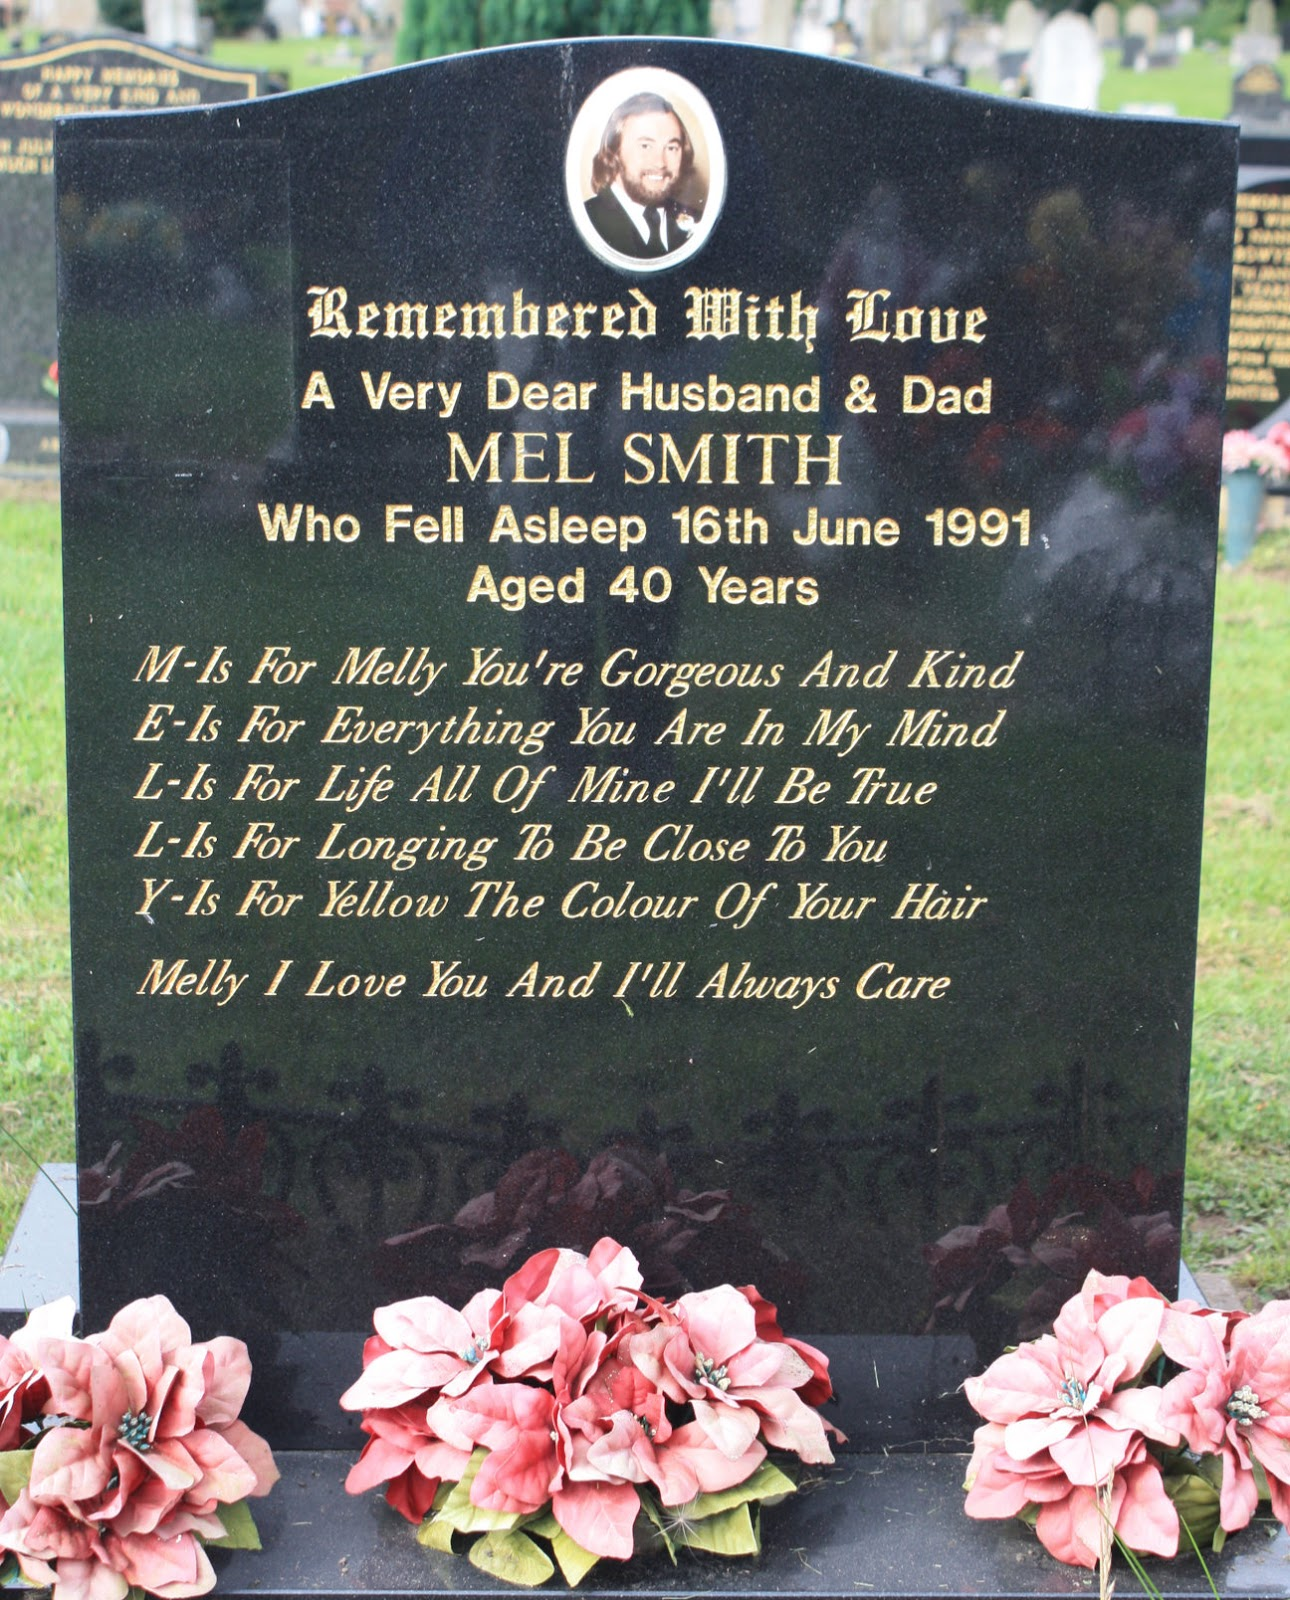 Grave Mistakes: A final message to the deceased using the